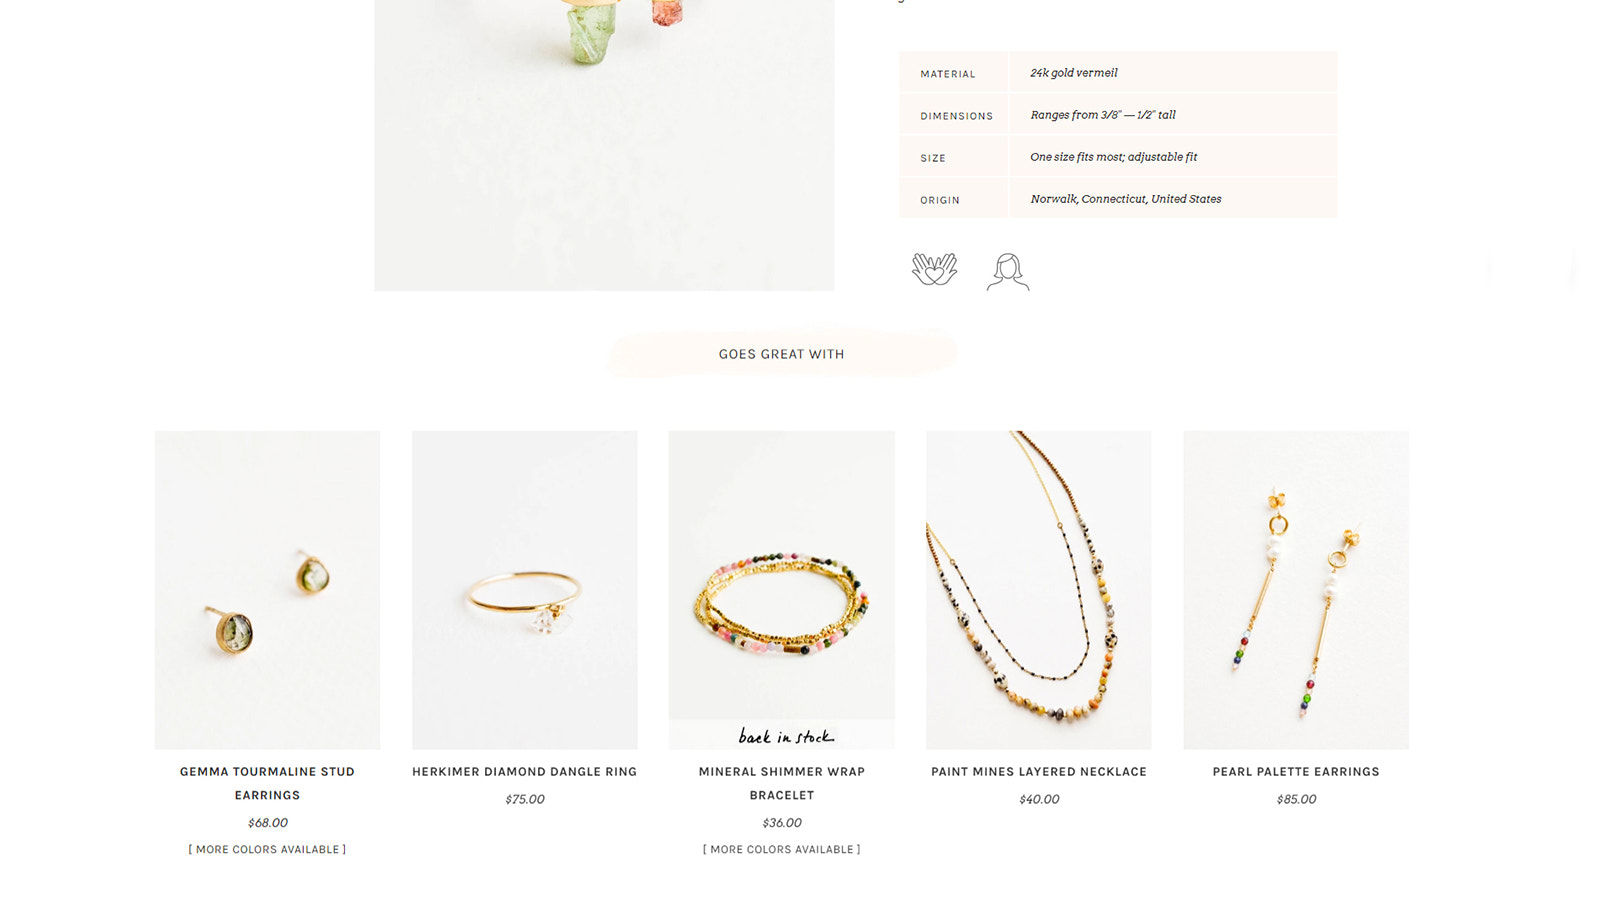 Similar Products and you may also like carousel for your store